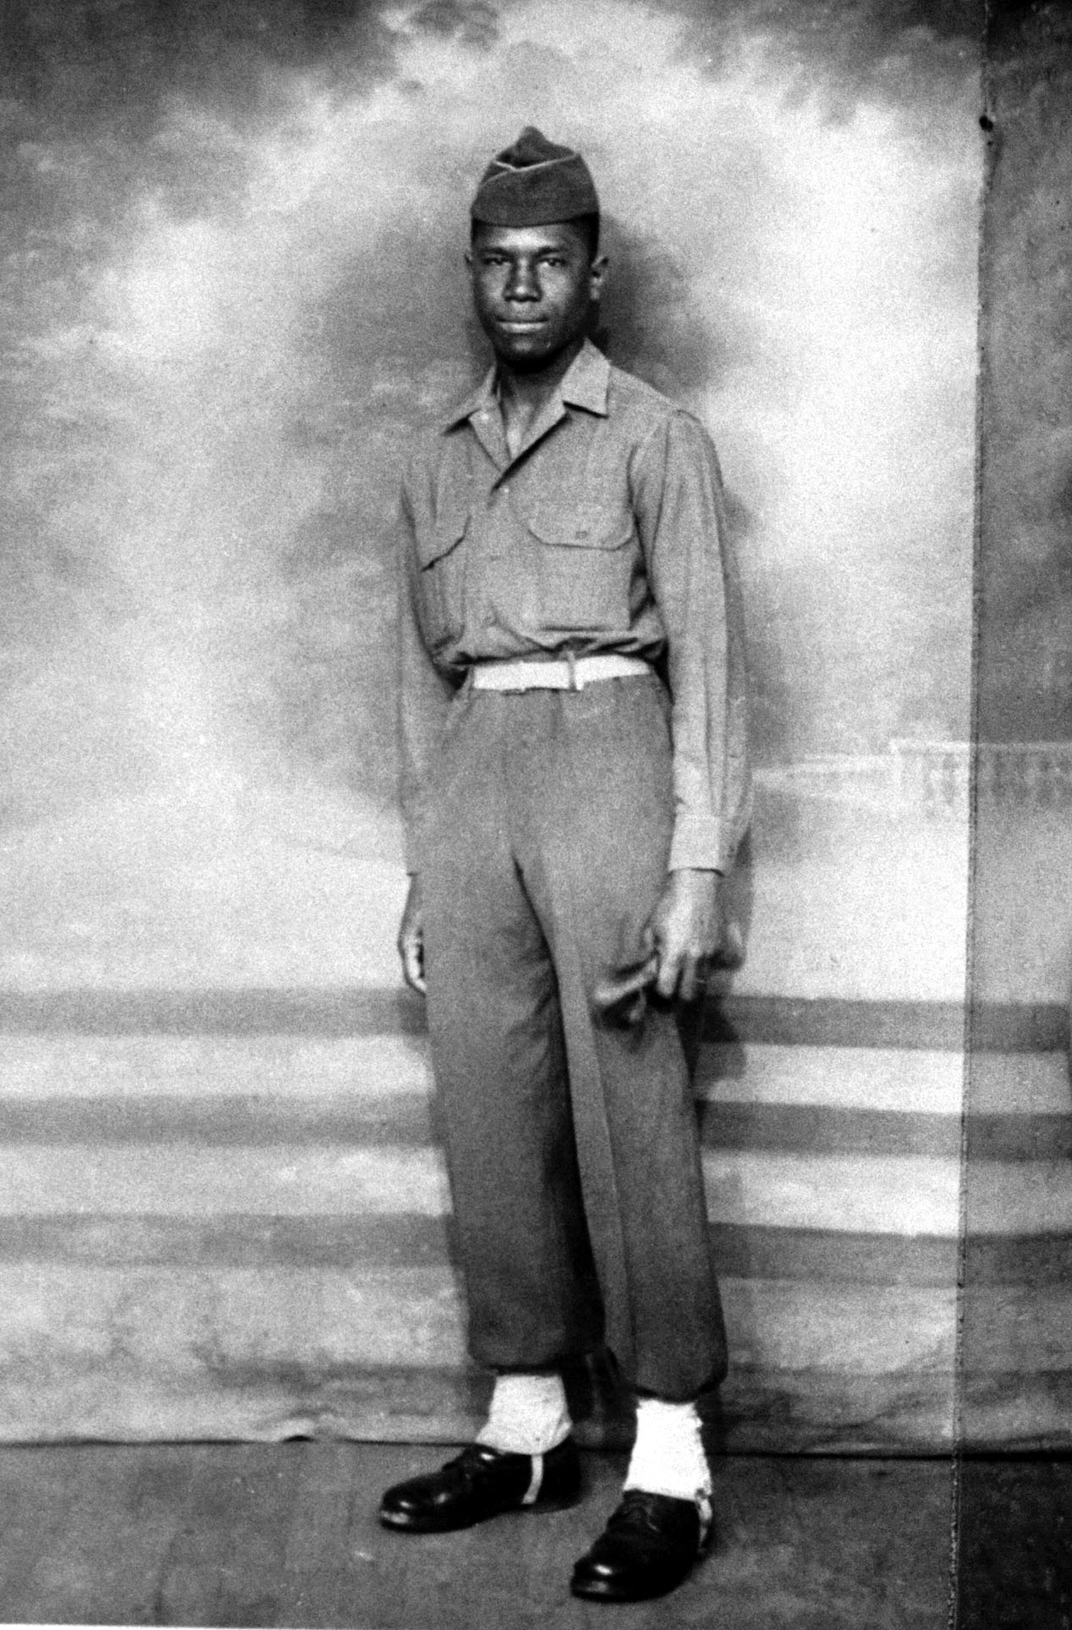 After Victory in World War II, Black Veterans Continued the Fight for Freedom at Home